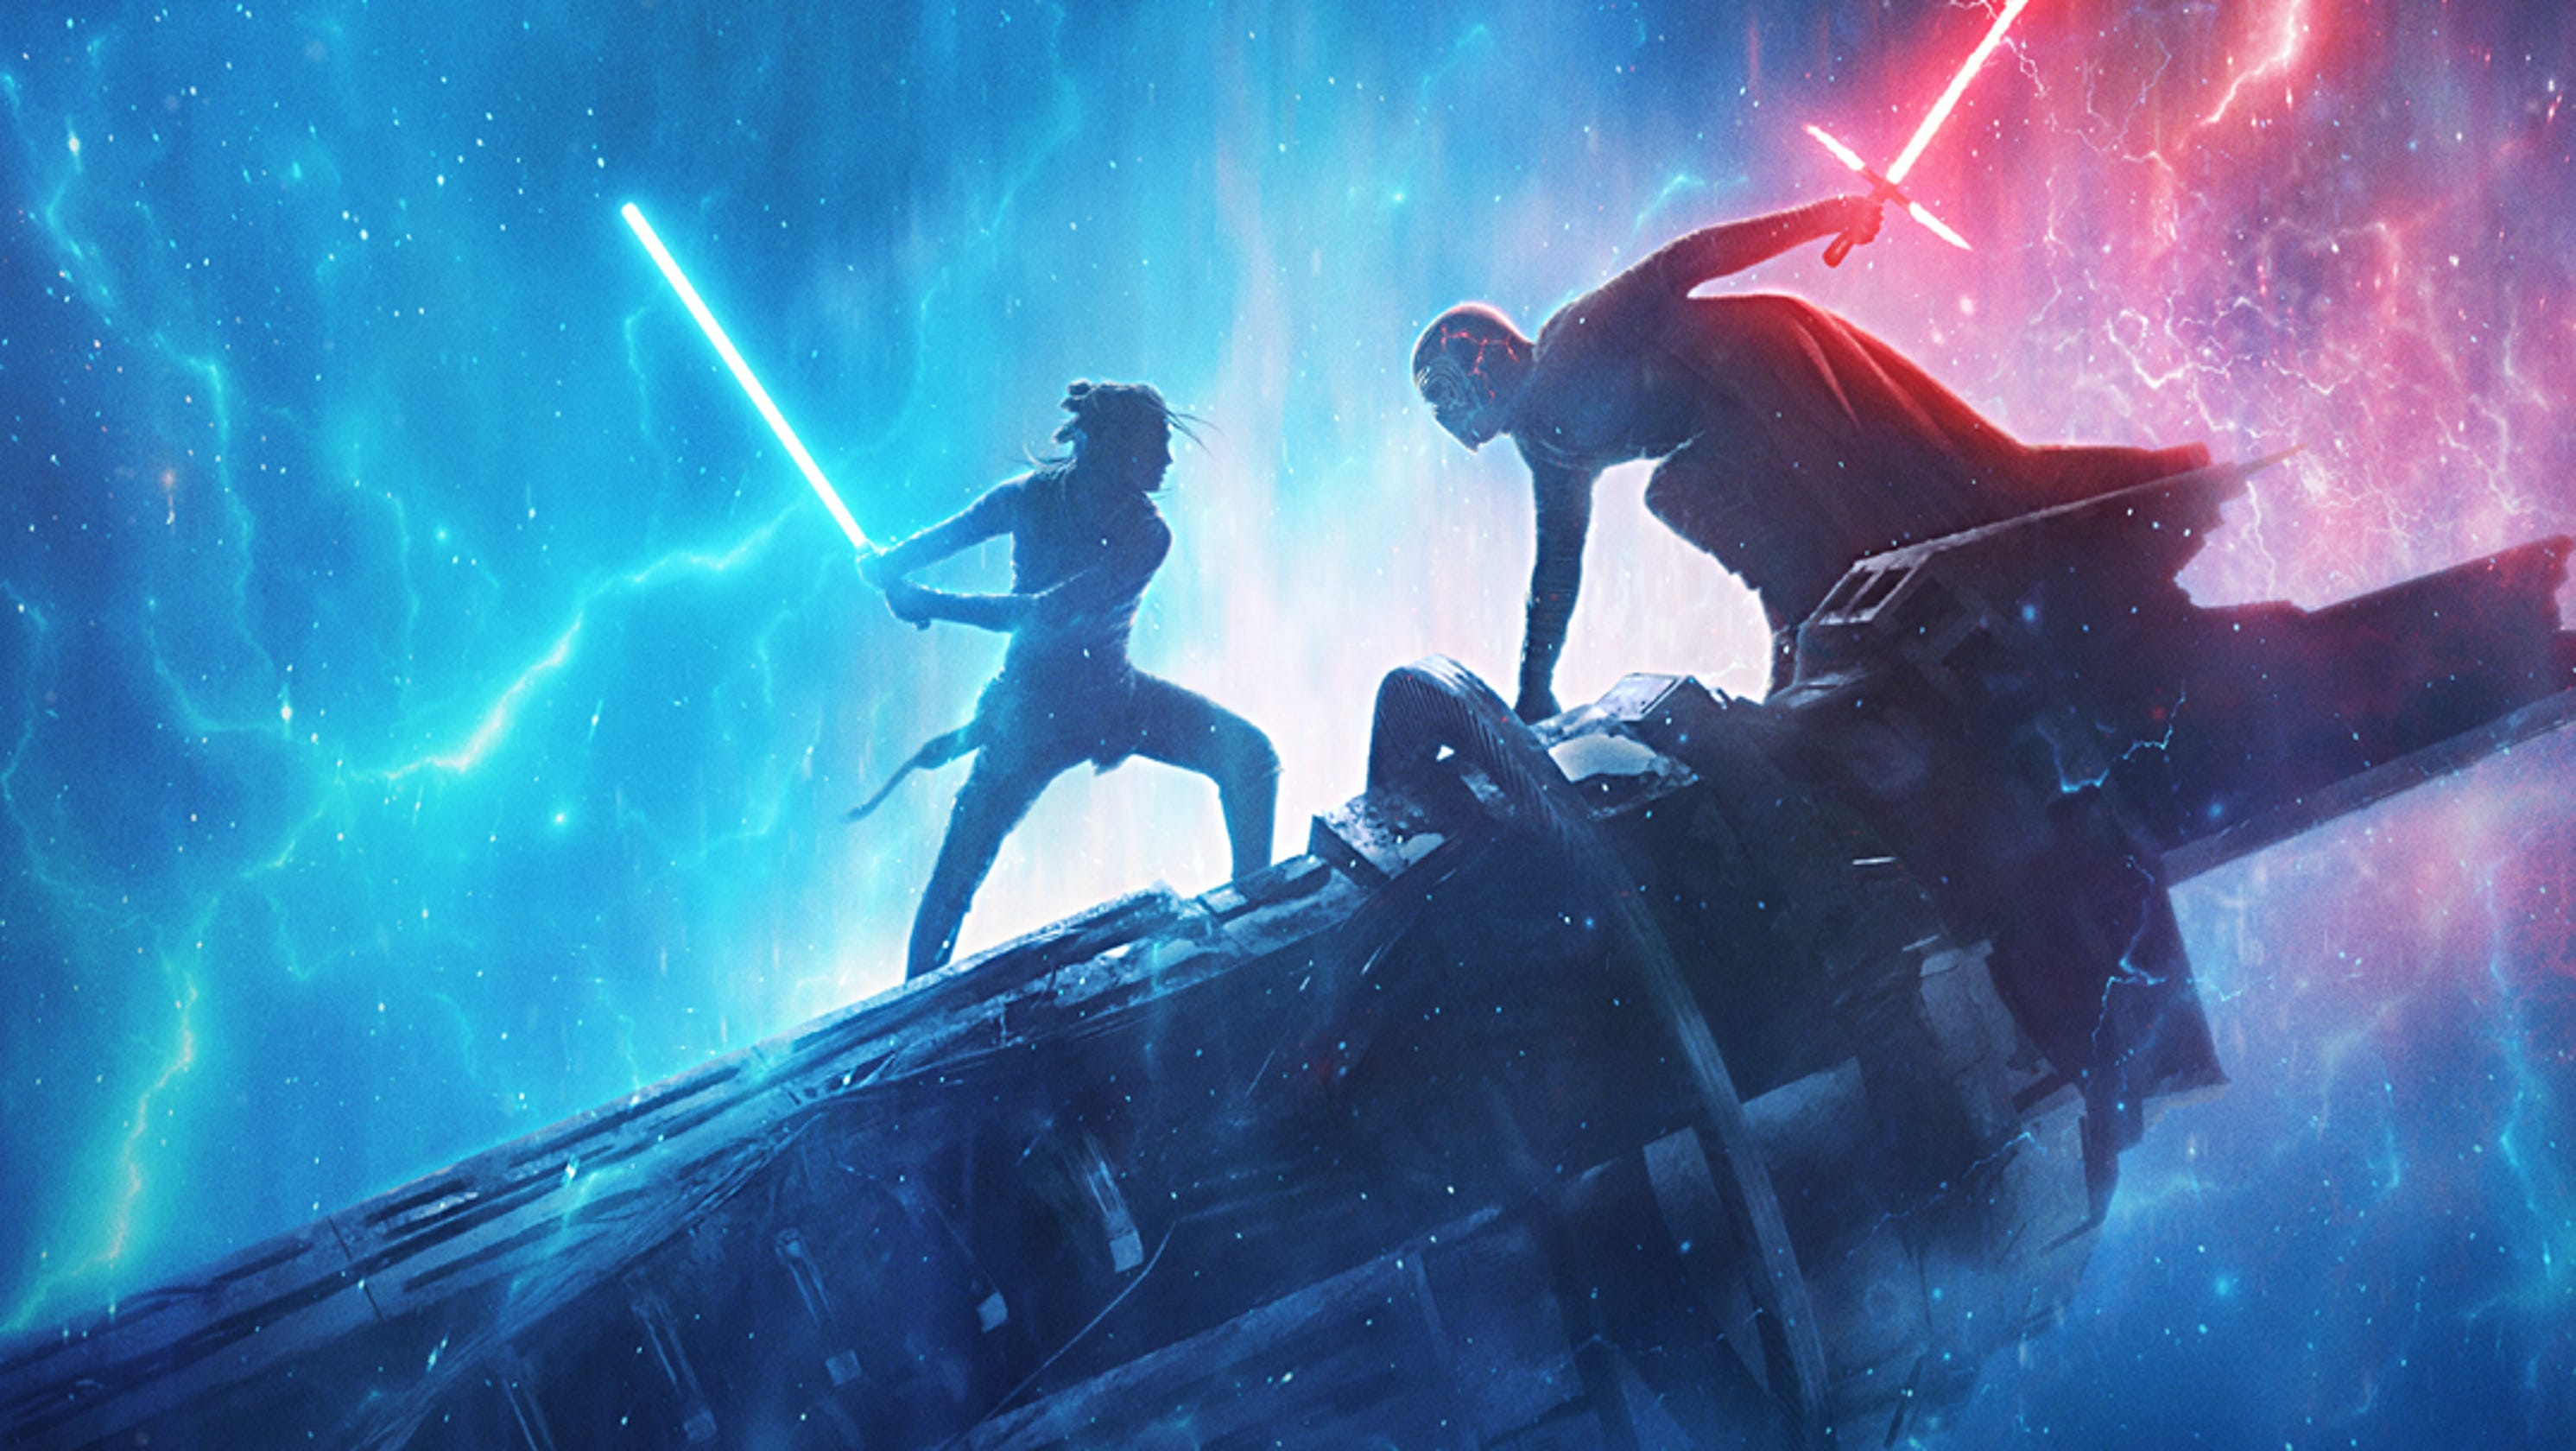 'Star Wars' fans lose it over 'Rise of Skywalker' D23 footage and Rey's double lightsaber